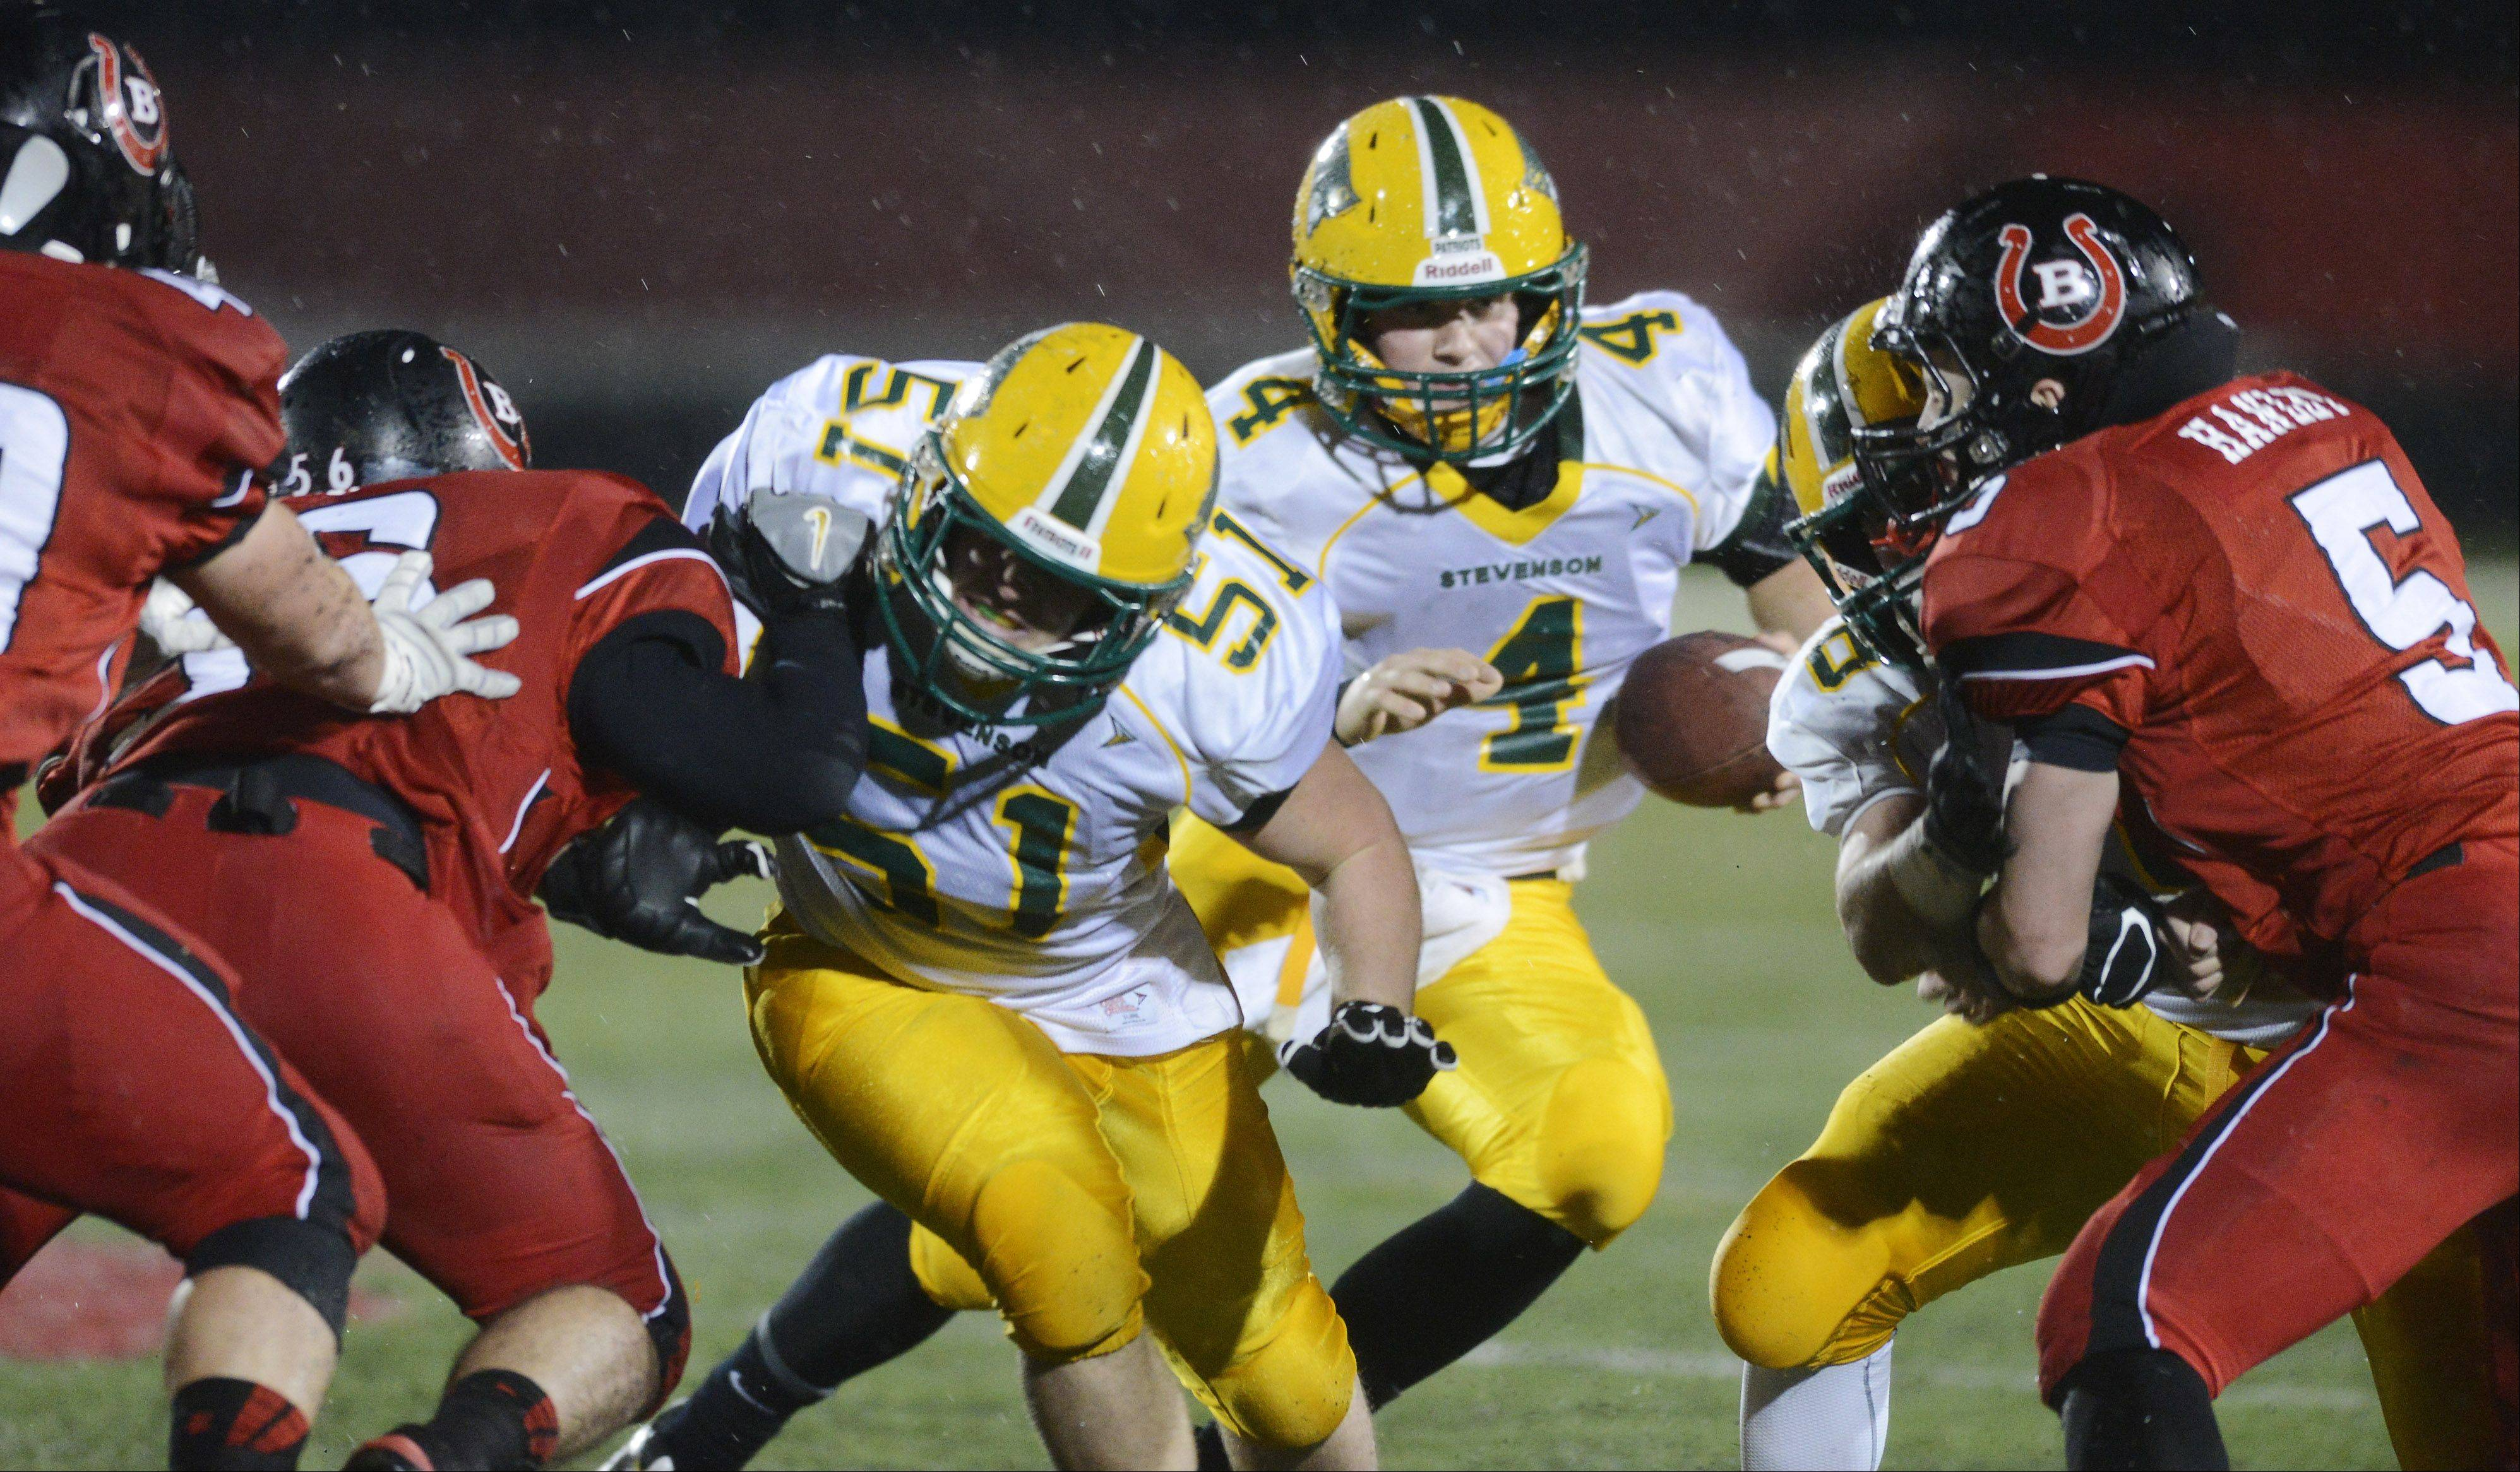 Stevenson quarterback Willie Bourbon carries the ball during Saturday's Class 8A playoff game against Barrington.